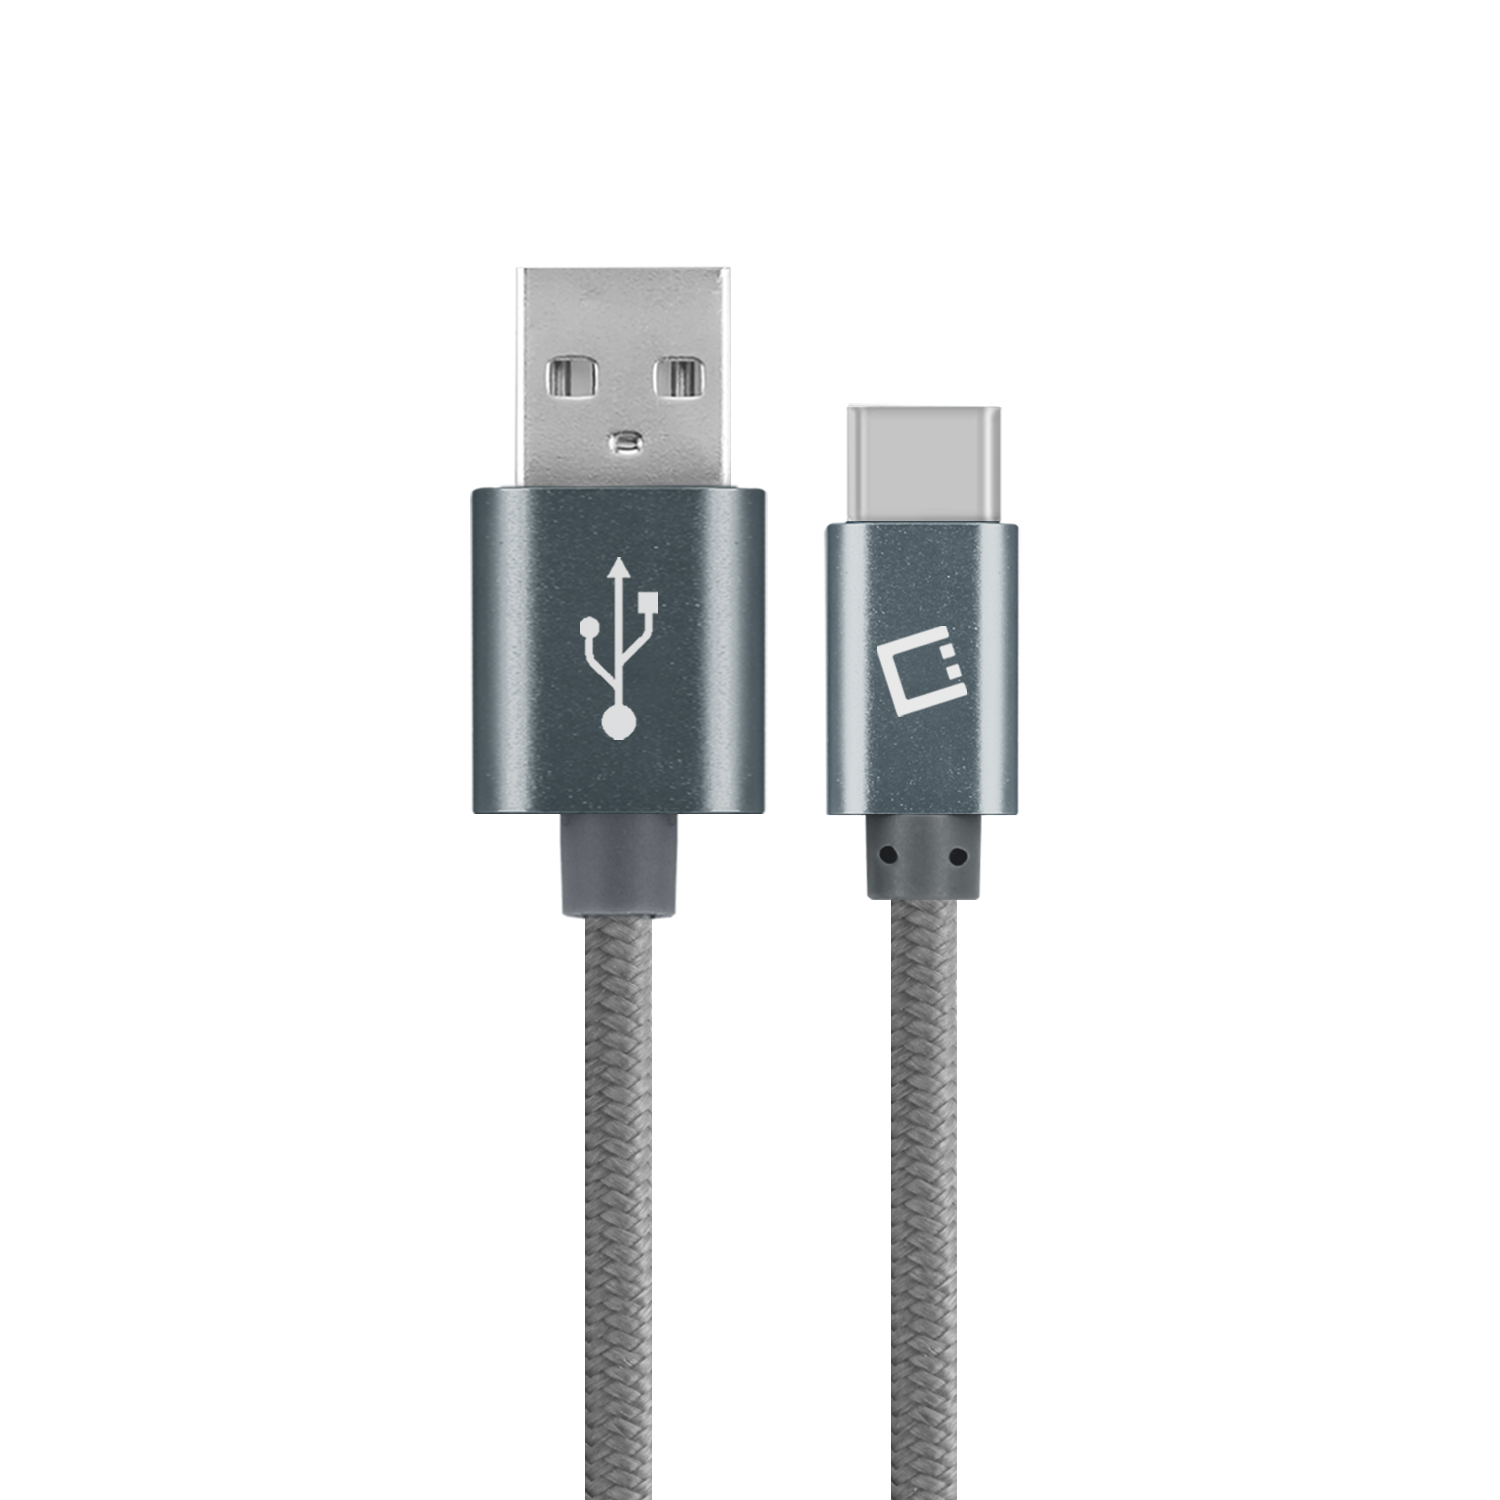 LG G8 ThinQ USB Type-C To Type-A Braided Data Power Cable Grey 10ft Braided